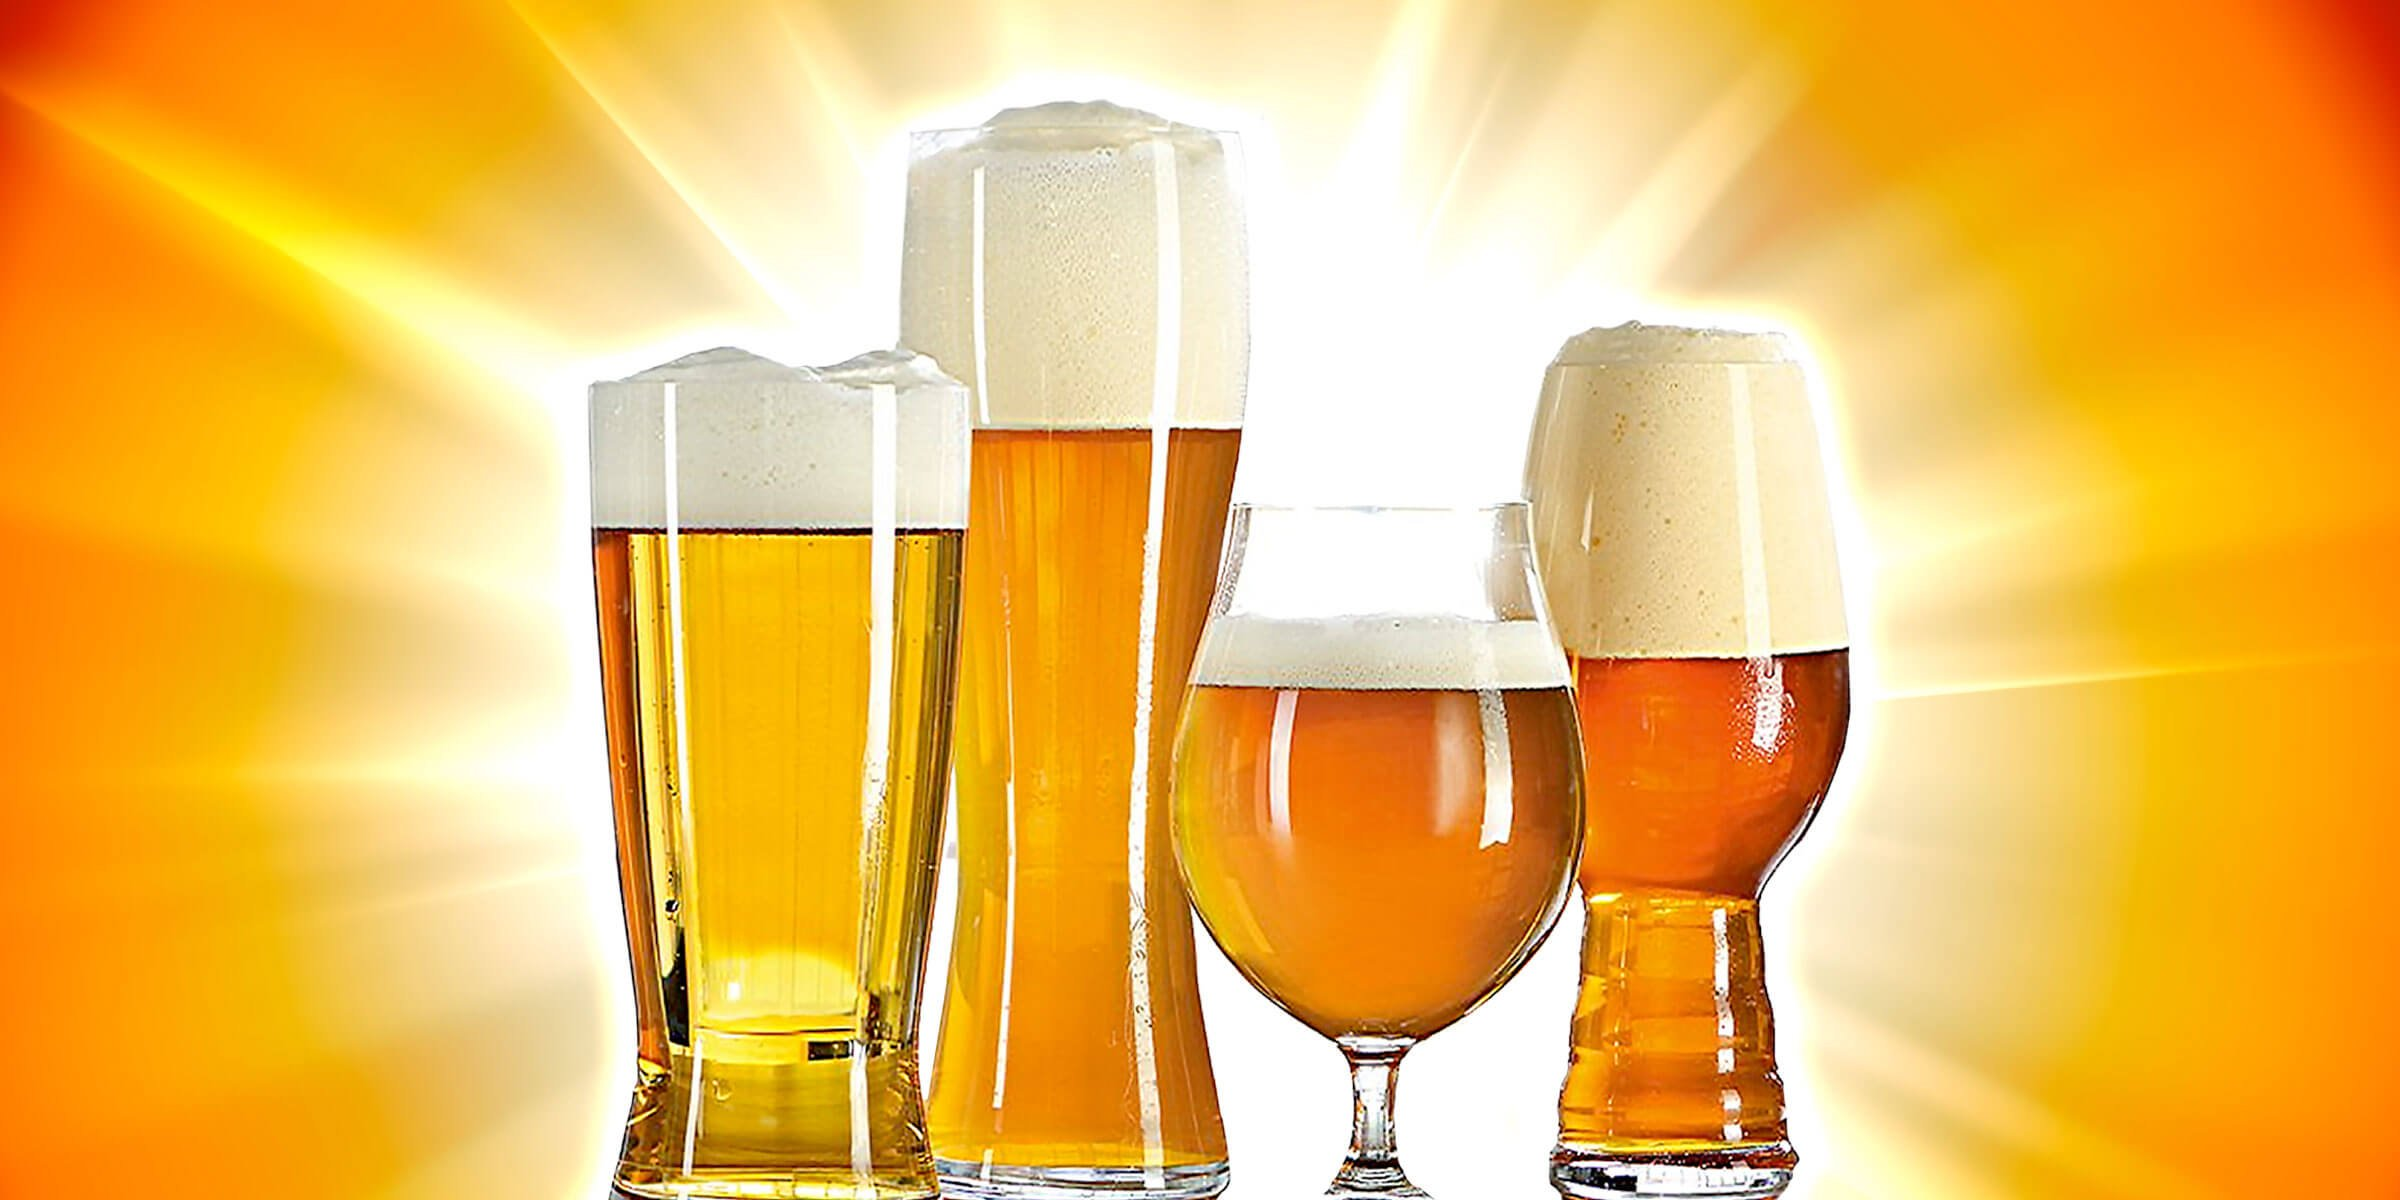 A quartet of golden beers set against a warm yellow-orange burst background